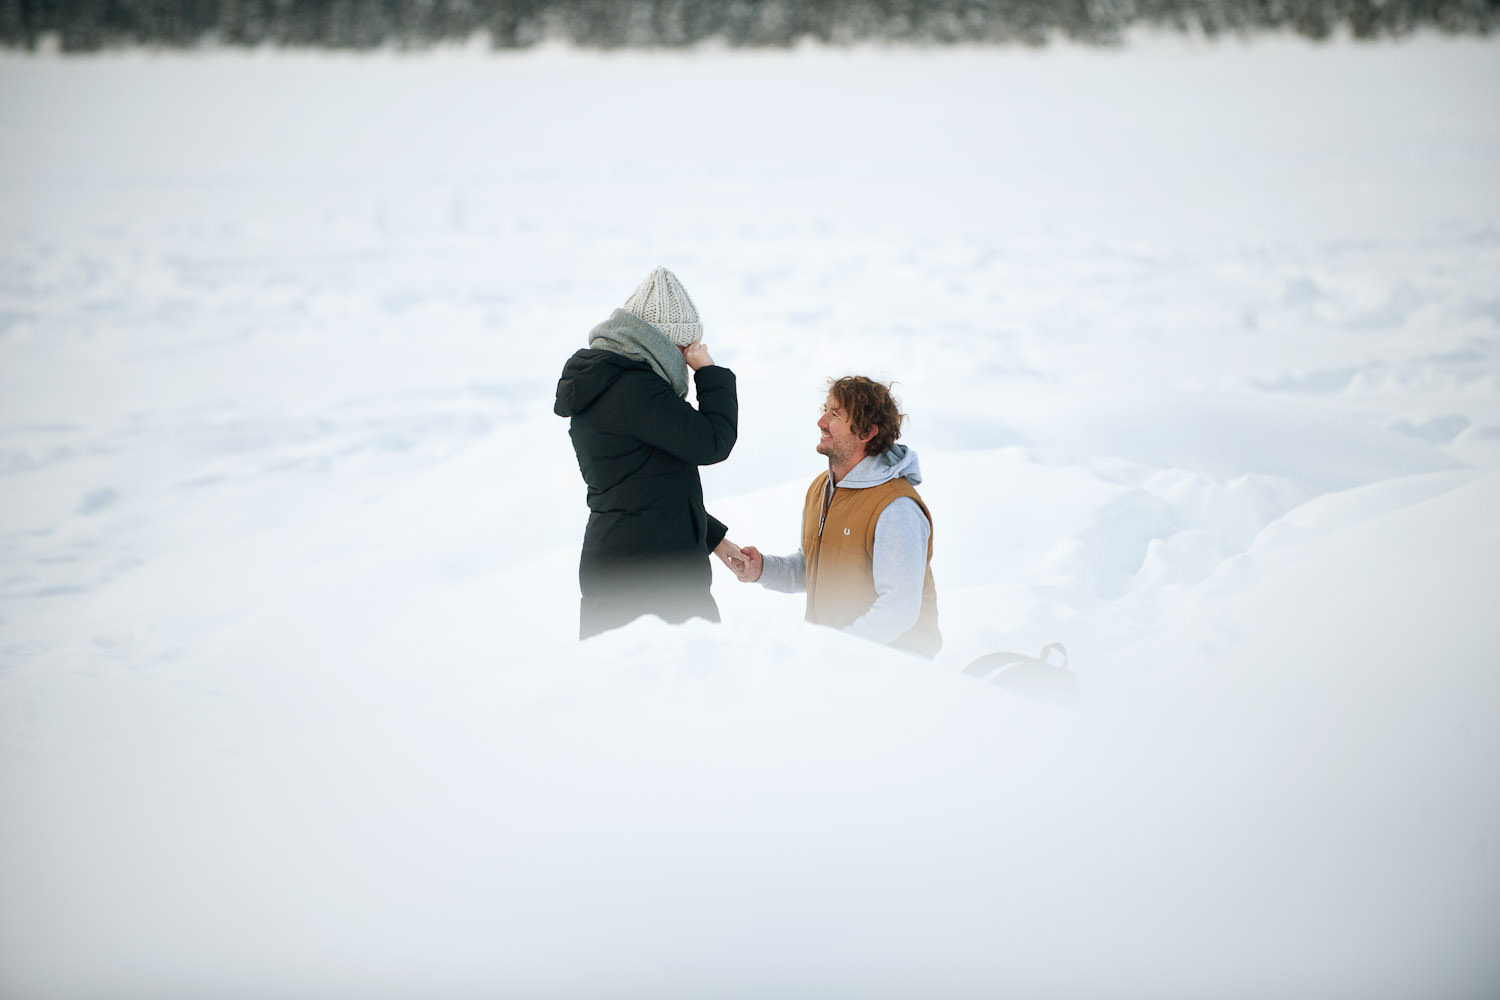 Brendan dropped to one knee to propose to Katherine at Lake Louise captured by Calgary wedding photographer Tara Whittaker